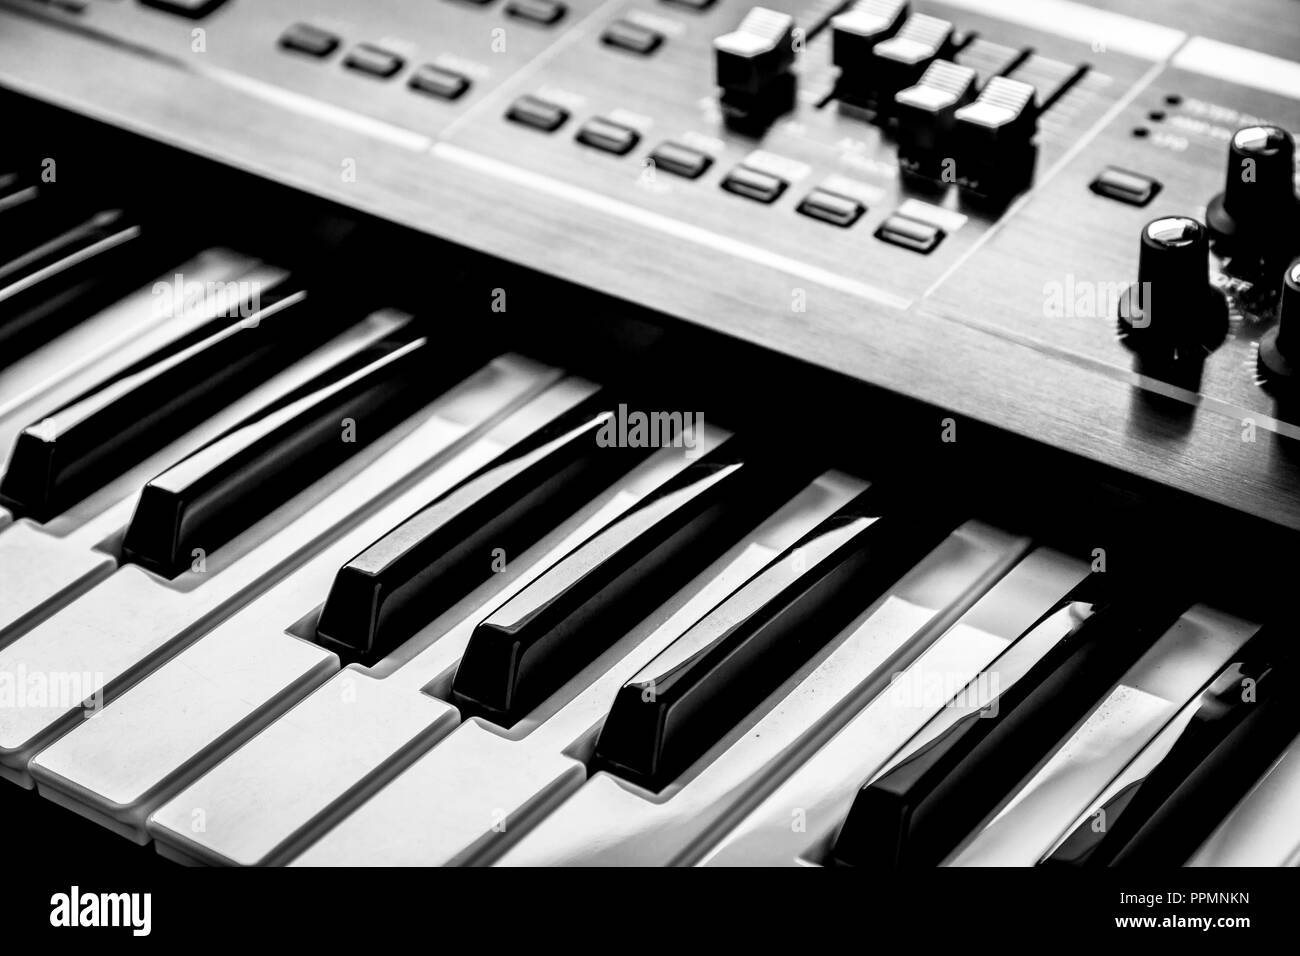 Synthesizer Keyboard Piano Keys - Stock Image